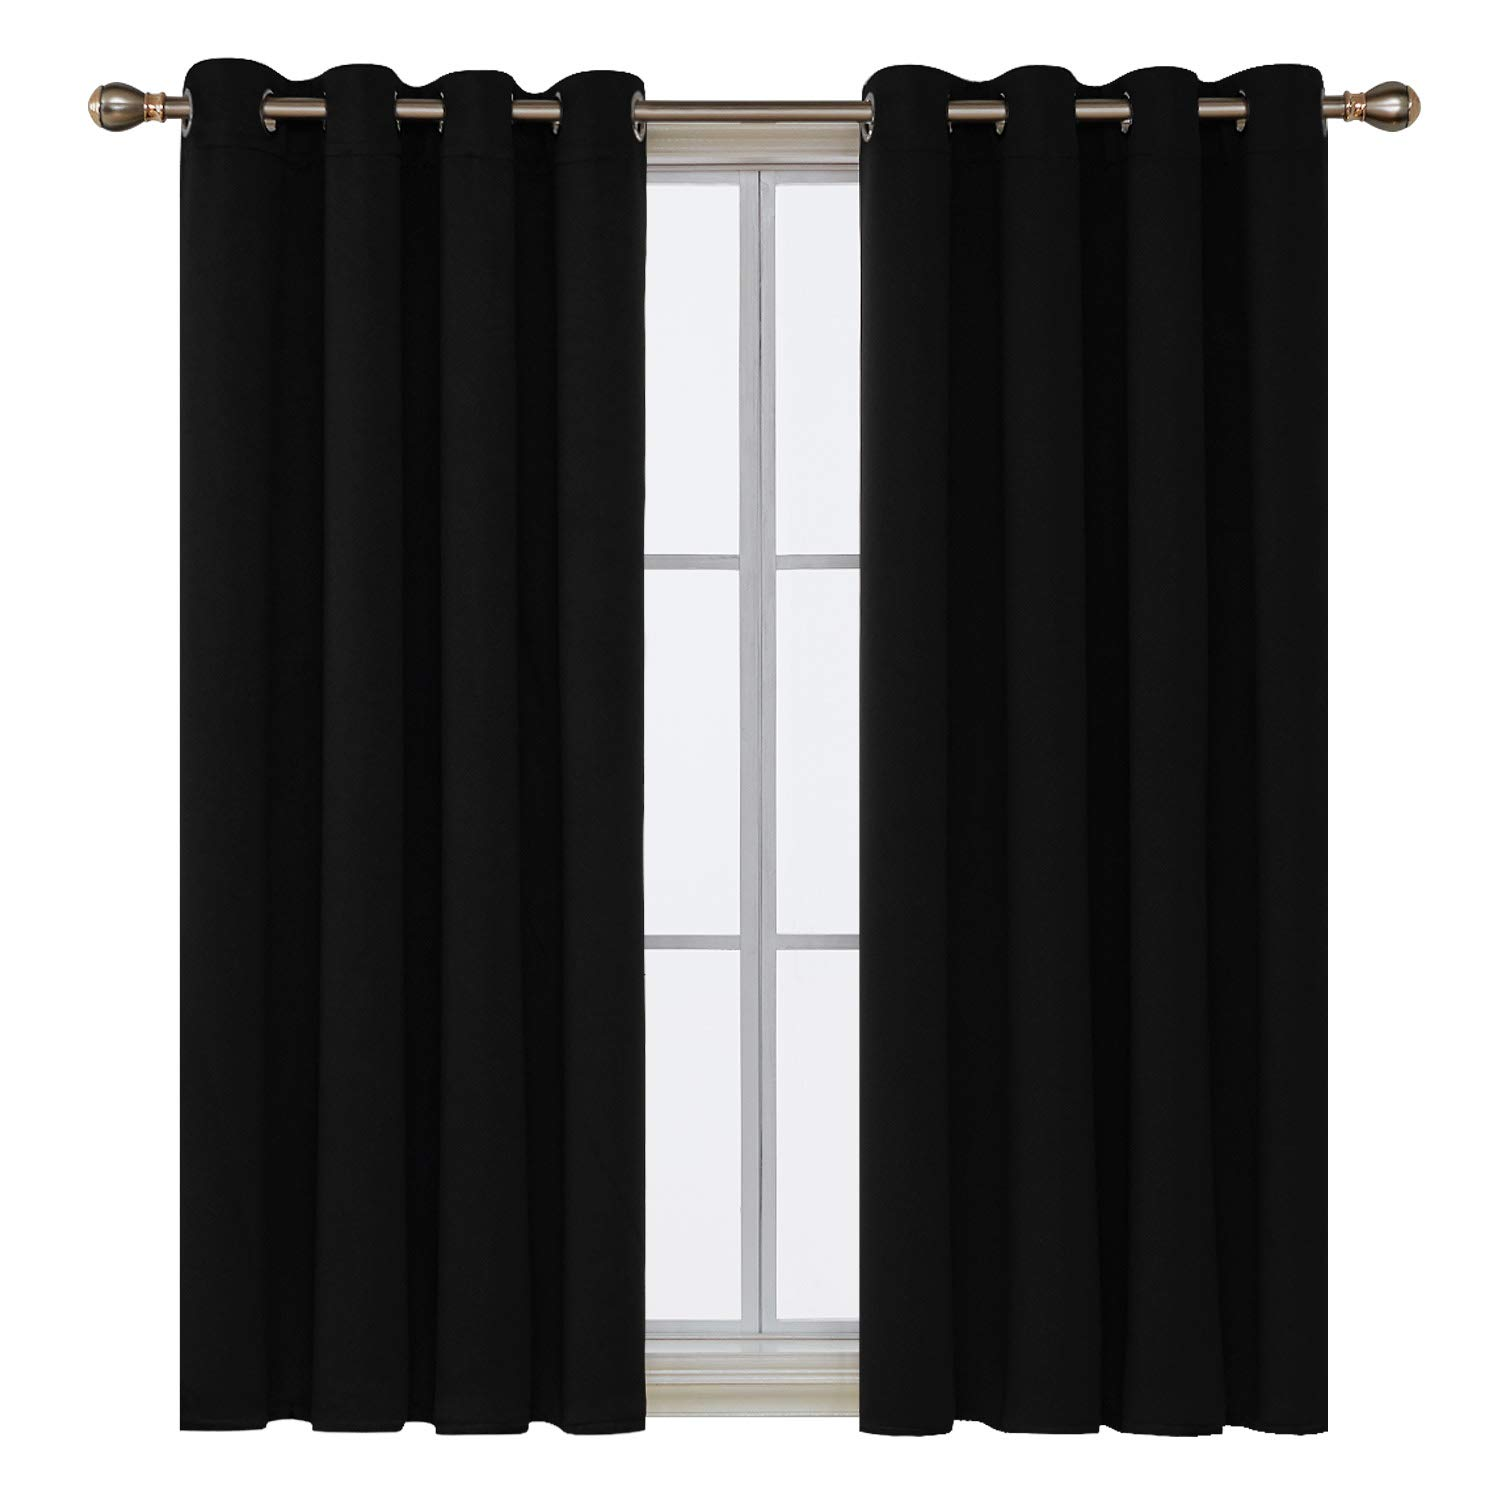 Image result for blackout curtains